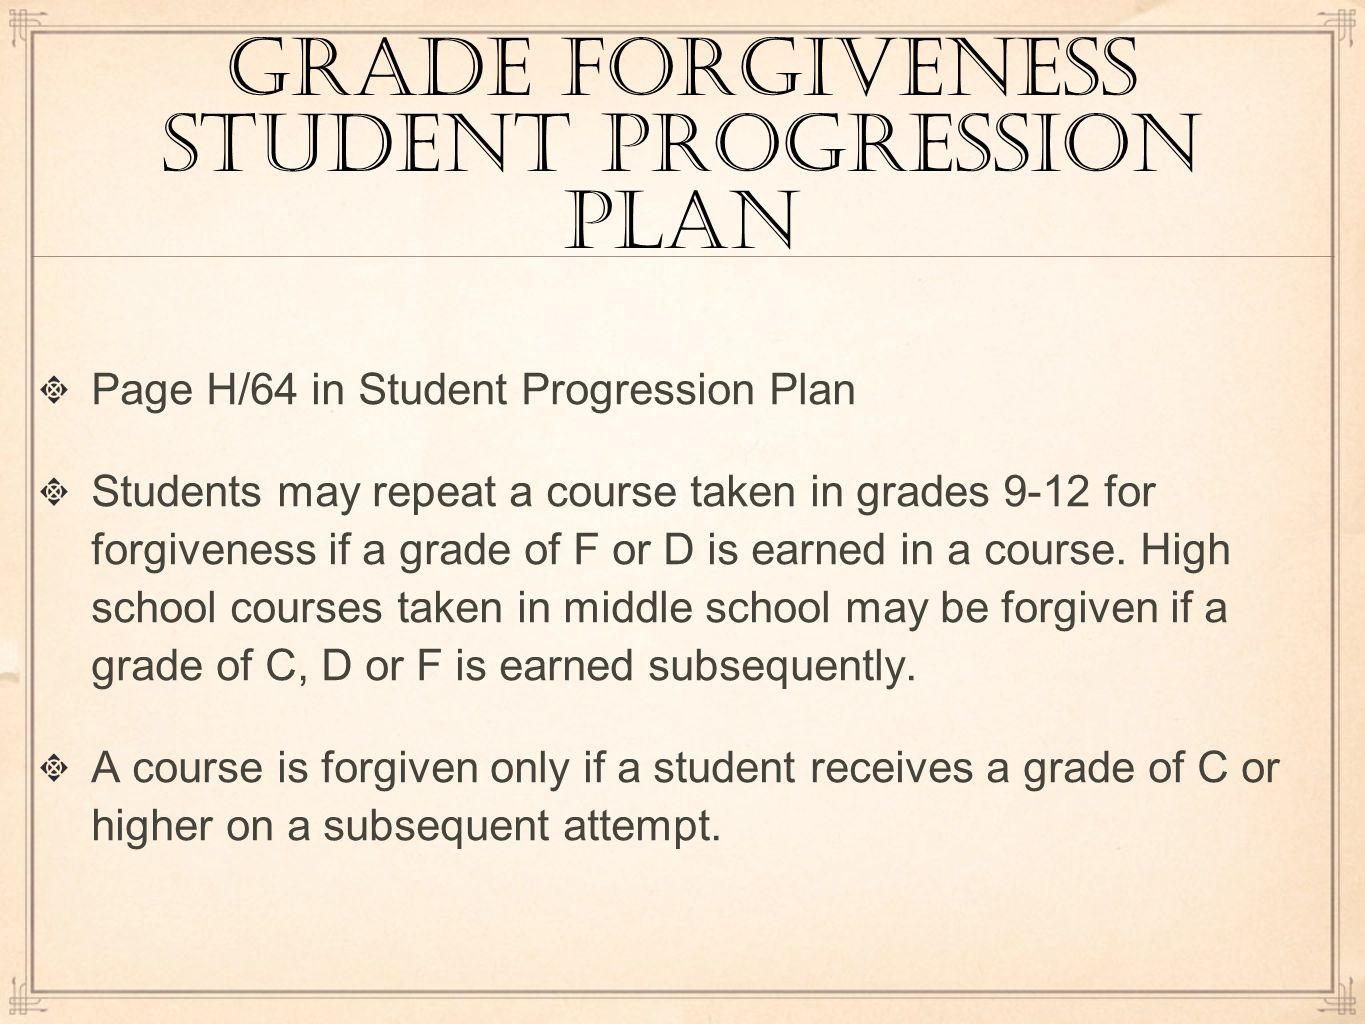 grade forgiveness student progression plan Page H/64 in Student Progression Plan Students may repeat a course taken in grades 9-12 for forgiveness if a grade of F or D is earned in a course.